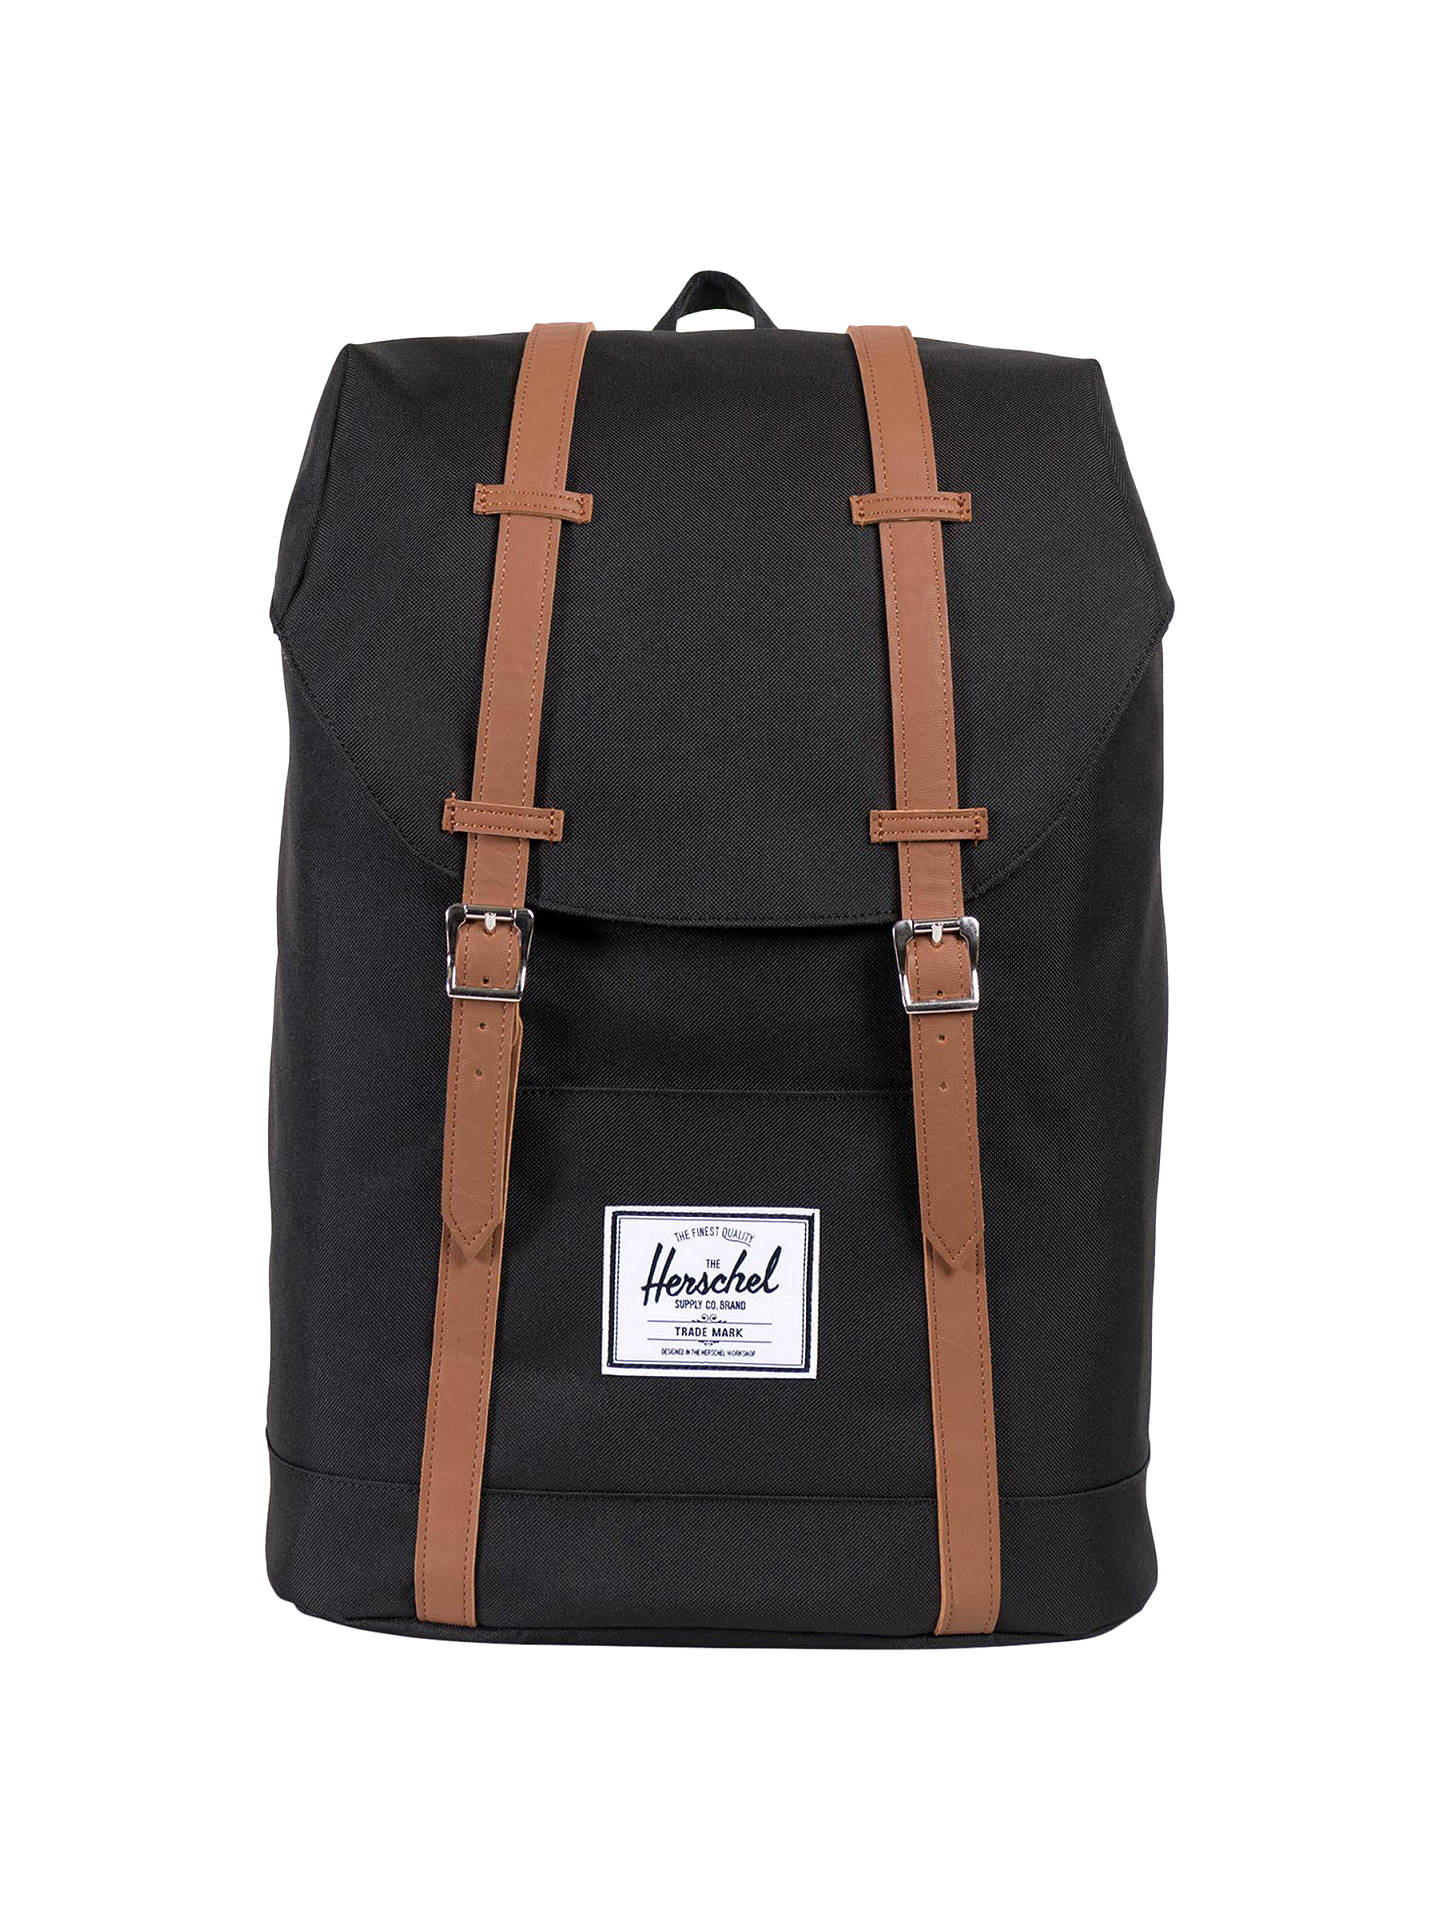 9eb50ef9700 Herschel Supply Co. Retreat Backpack at John Lewis   Partners